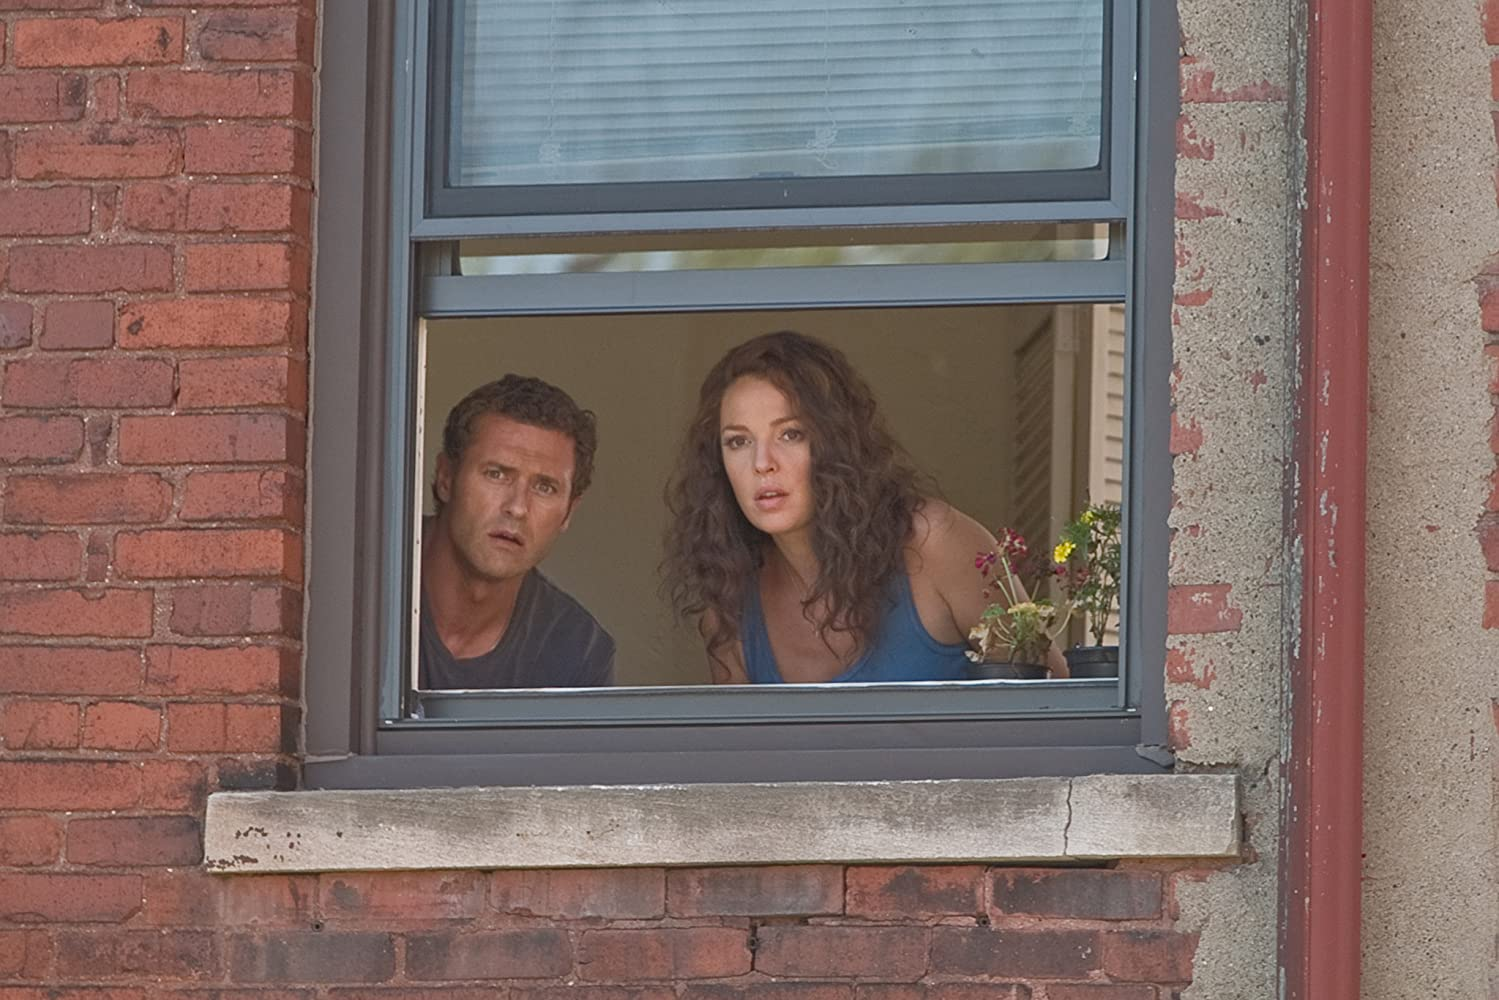 Katherine Heigl and Jason O'Mara in One for the Money (2012)